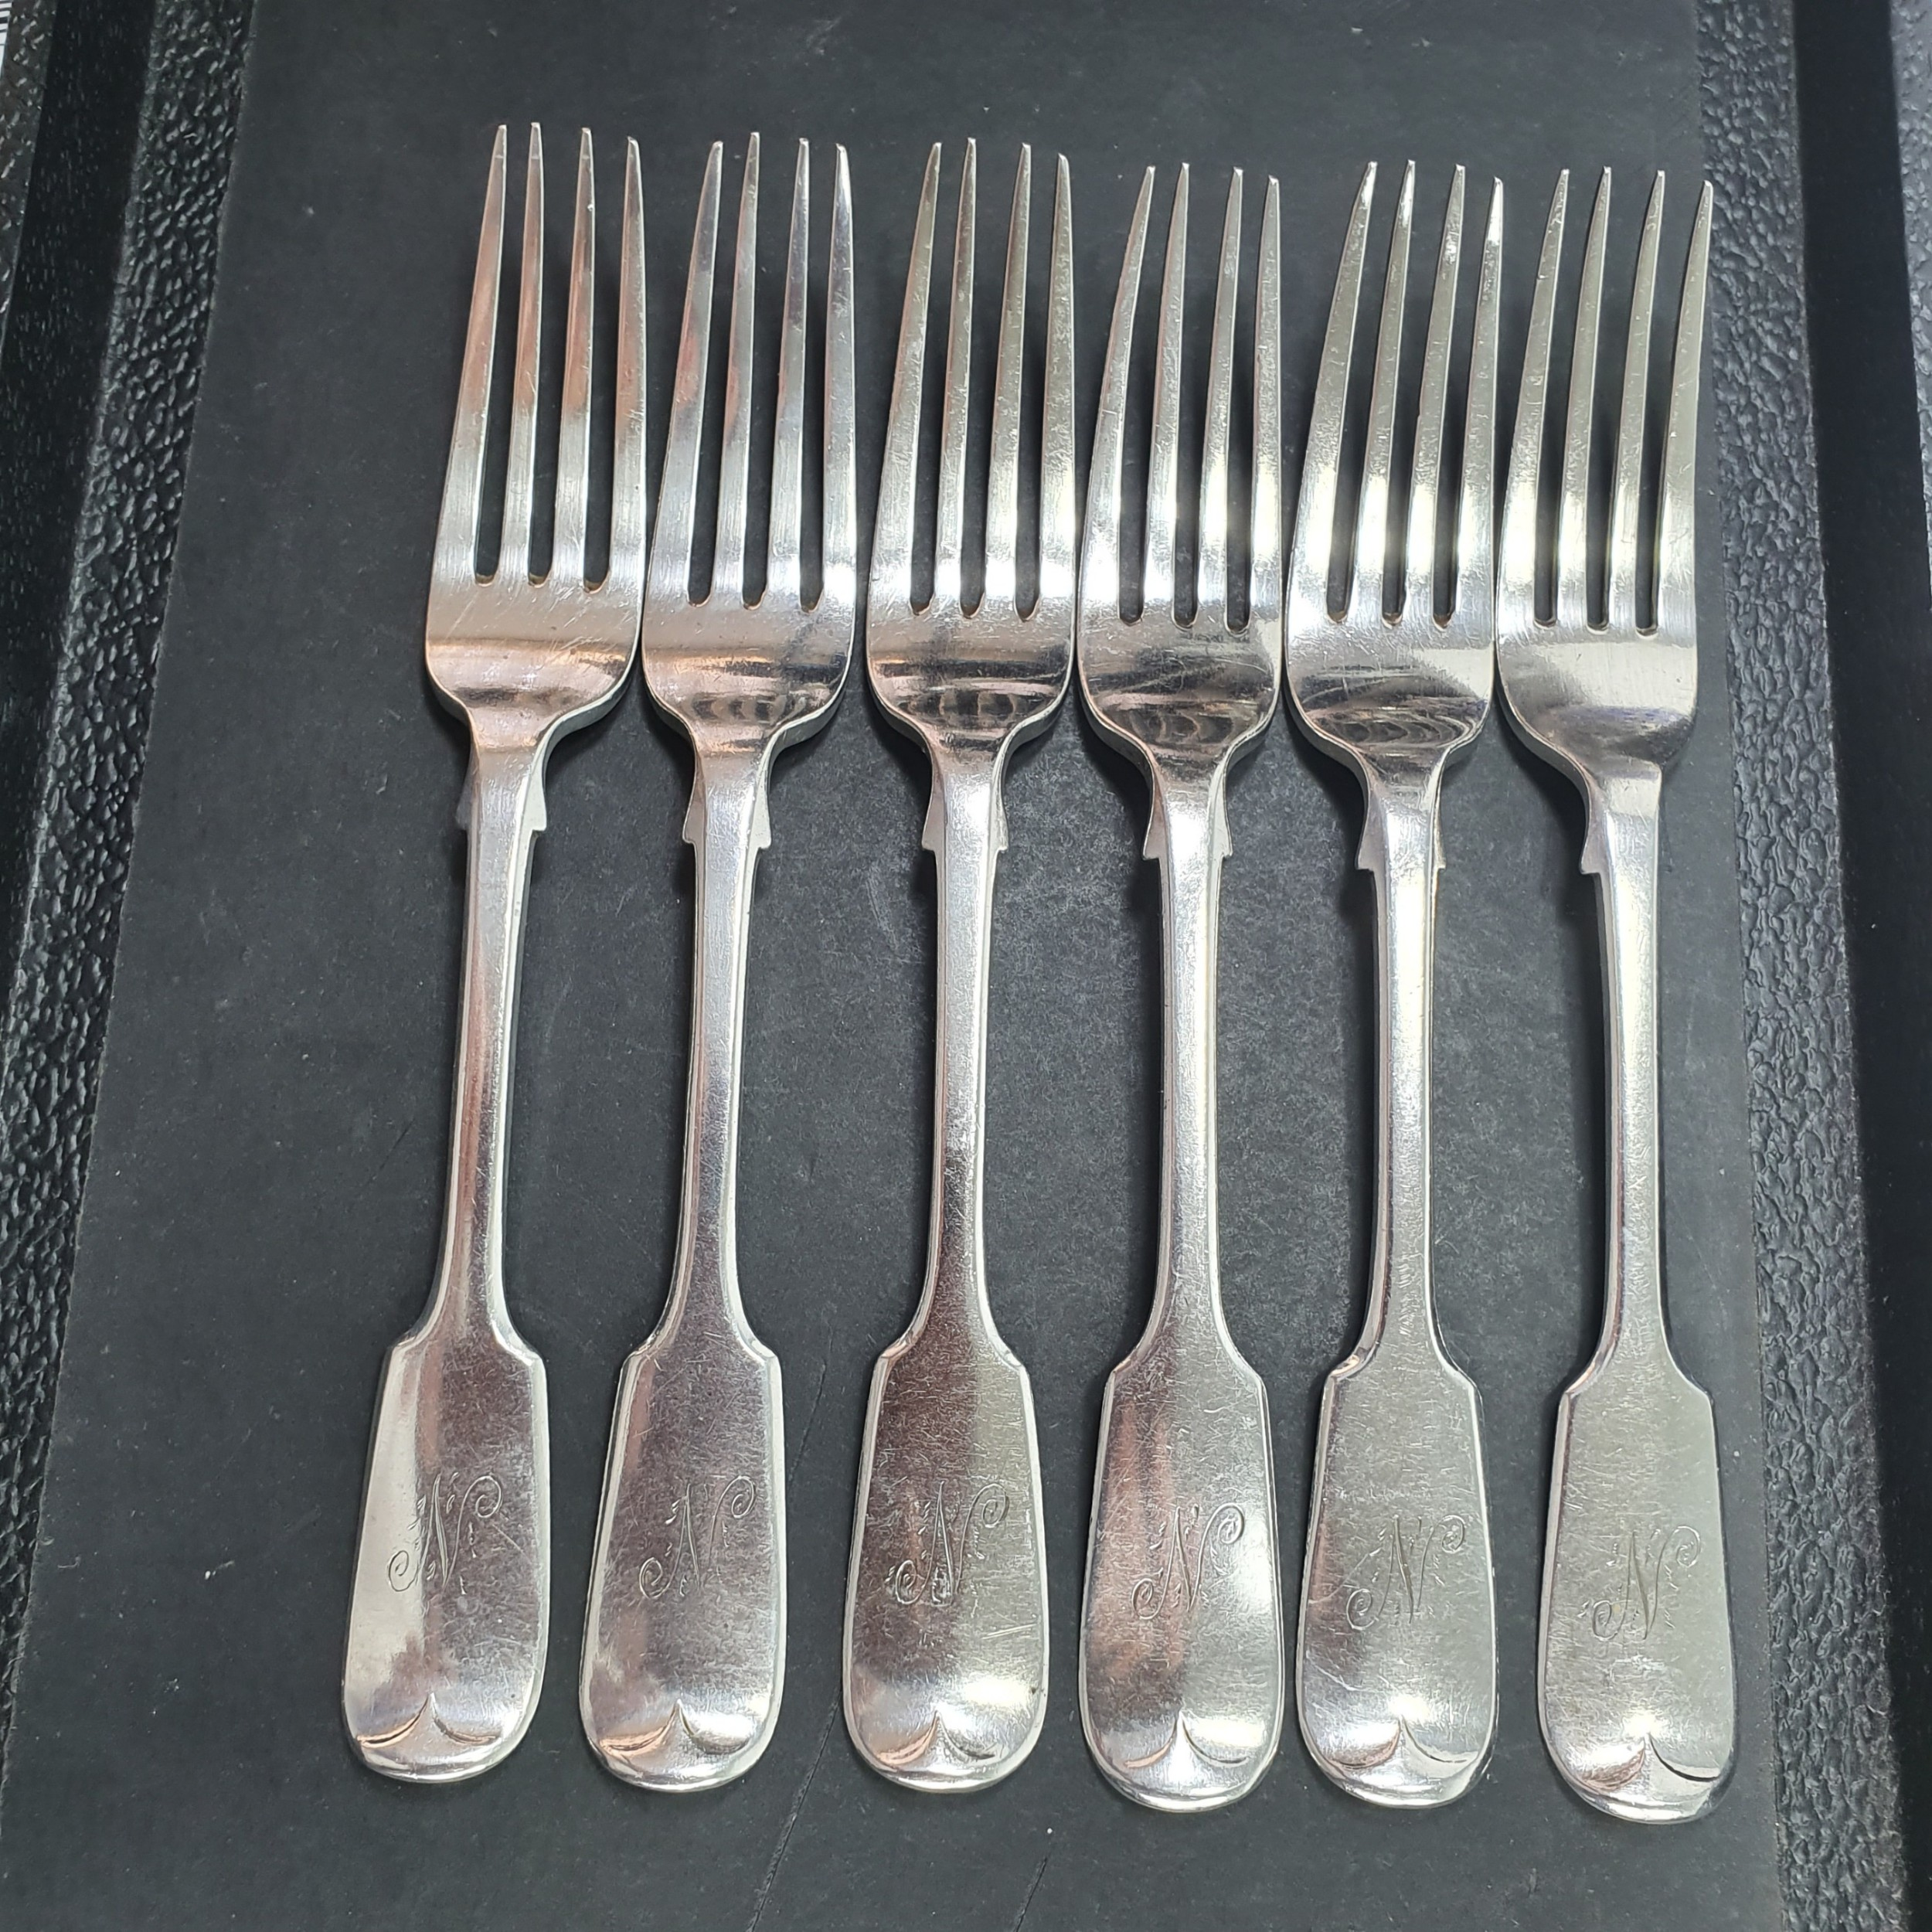 6 x english antique sterling silver dessert forks by stephen smith lon 1871